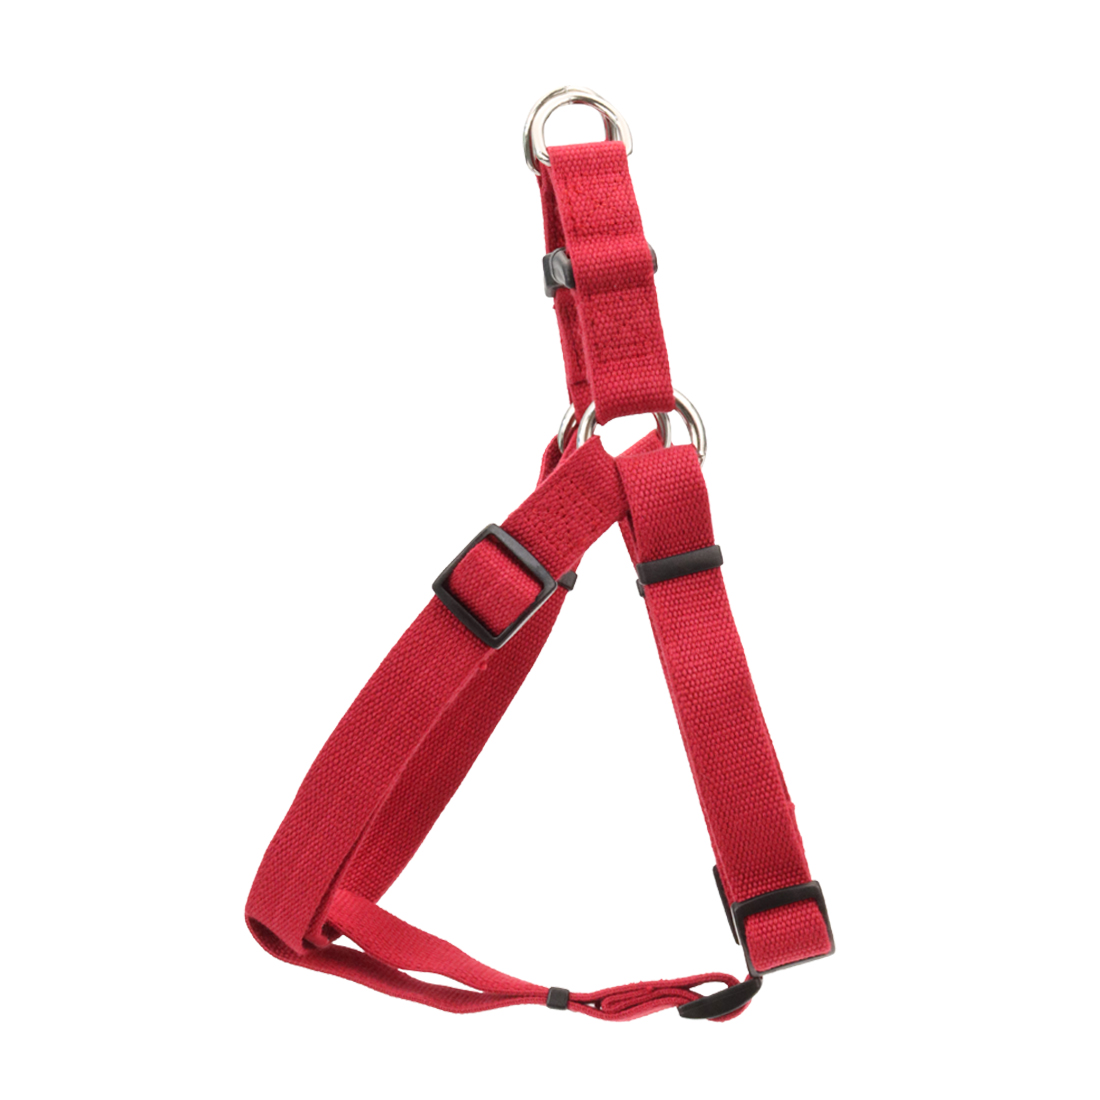 New Earth Soy Comfort Wrap Adjustable Dog Harness, Cranberry Image